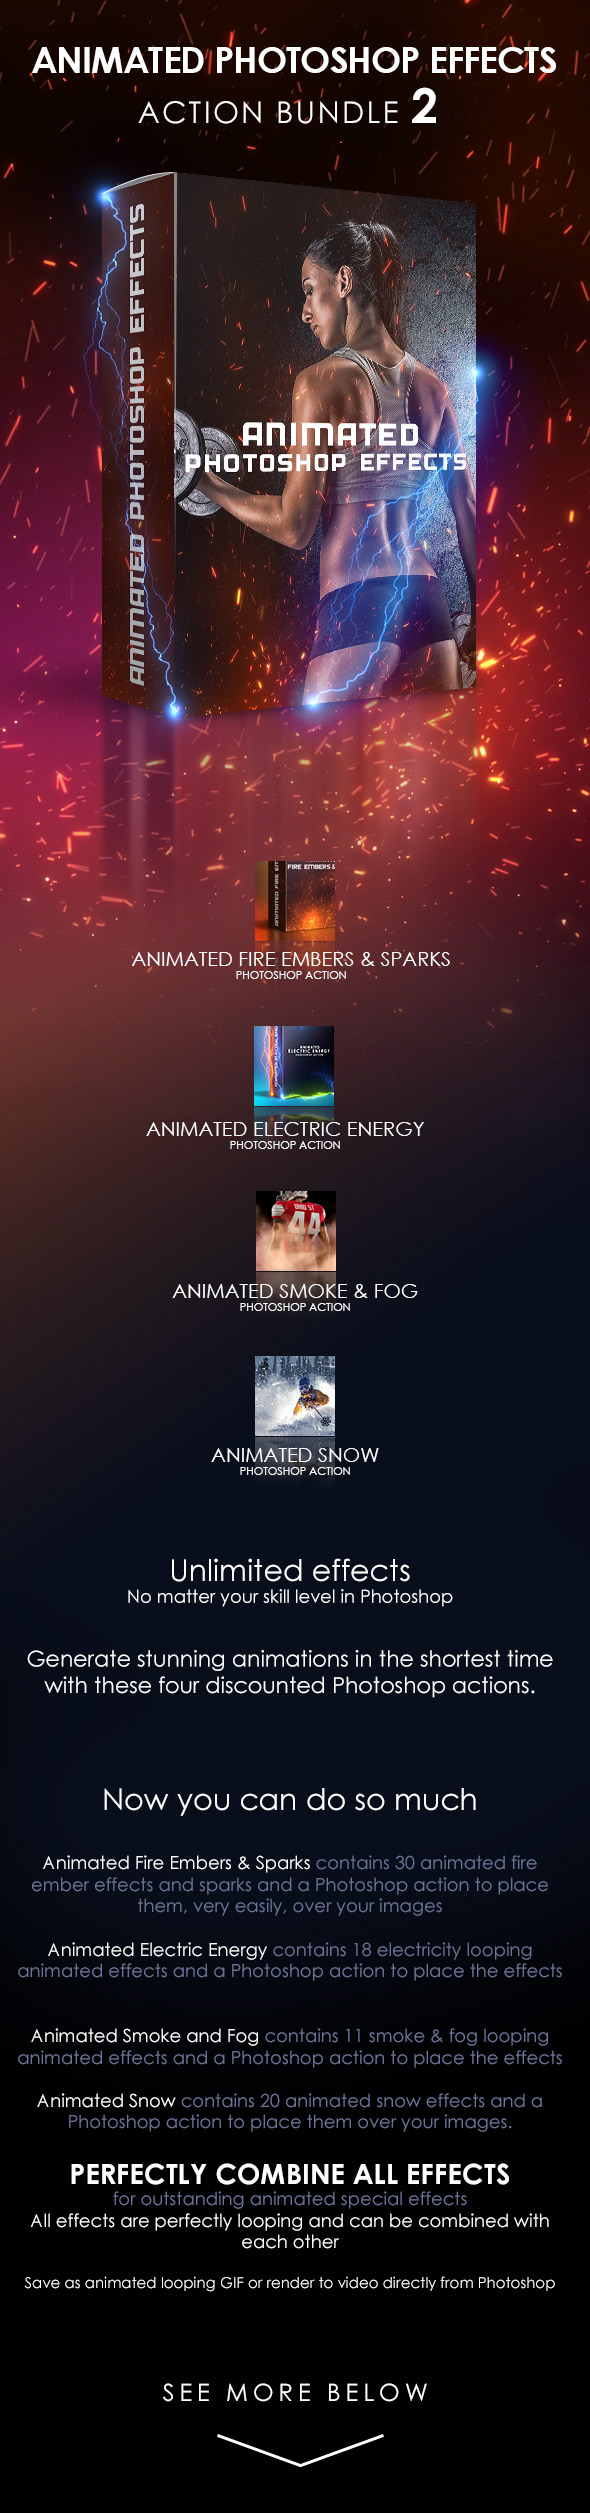 Animated Photoshop Effects Action Bundle 2 - Photo Effects Actions